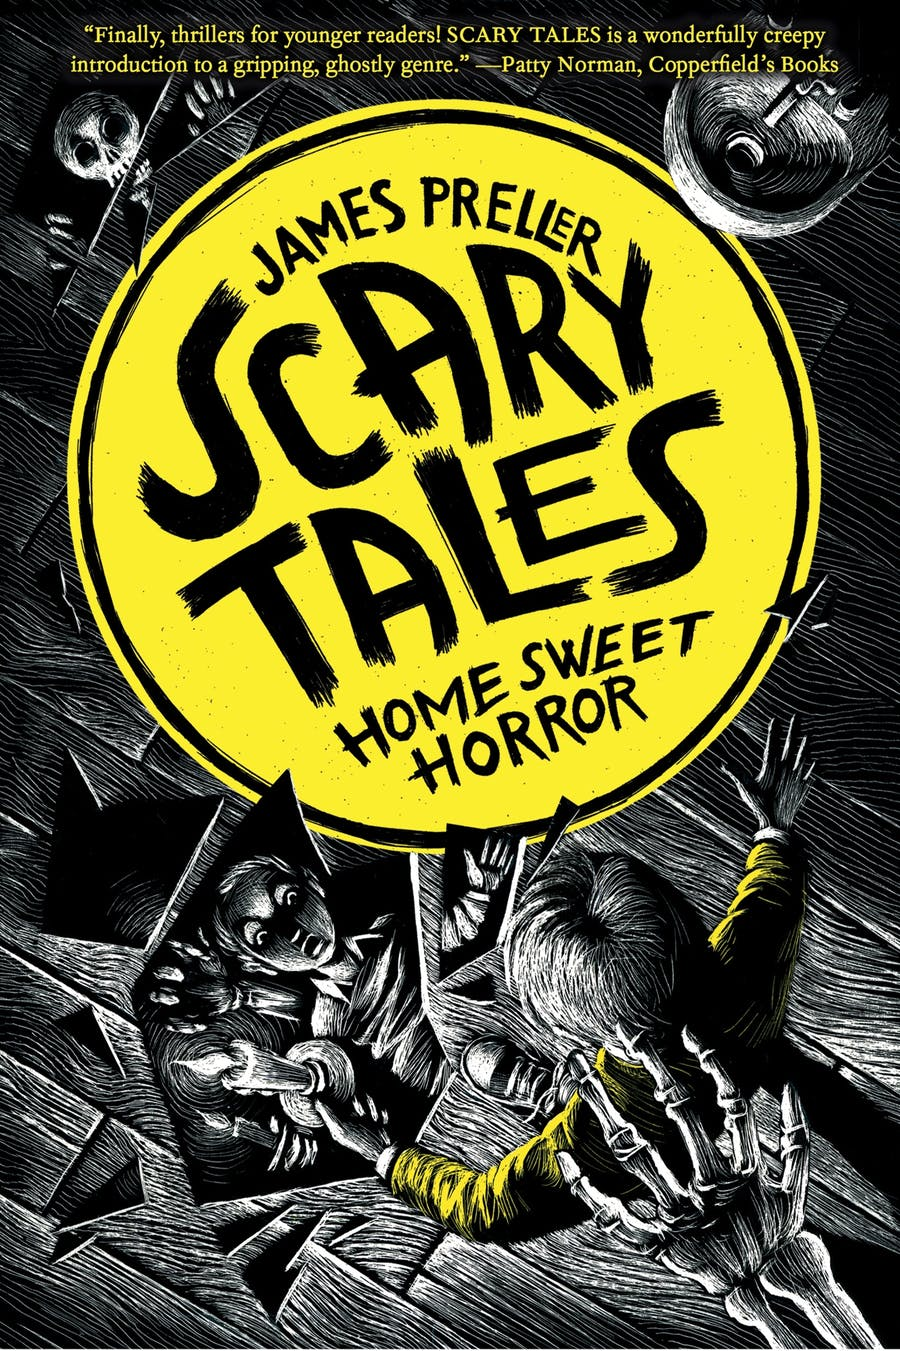 Home Sweet Horror by James Preller, illustrated by Iacopo Bruno